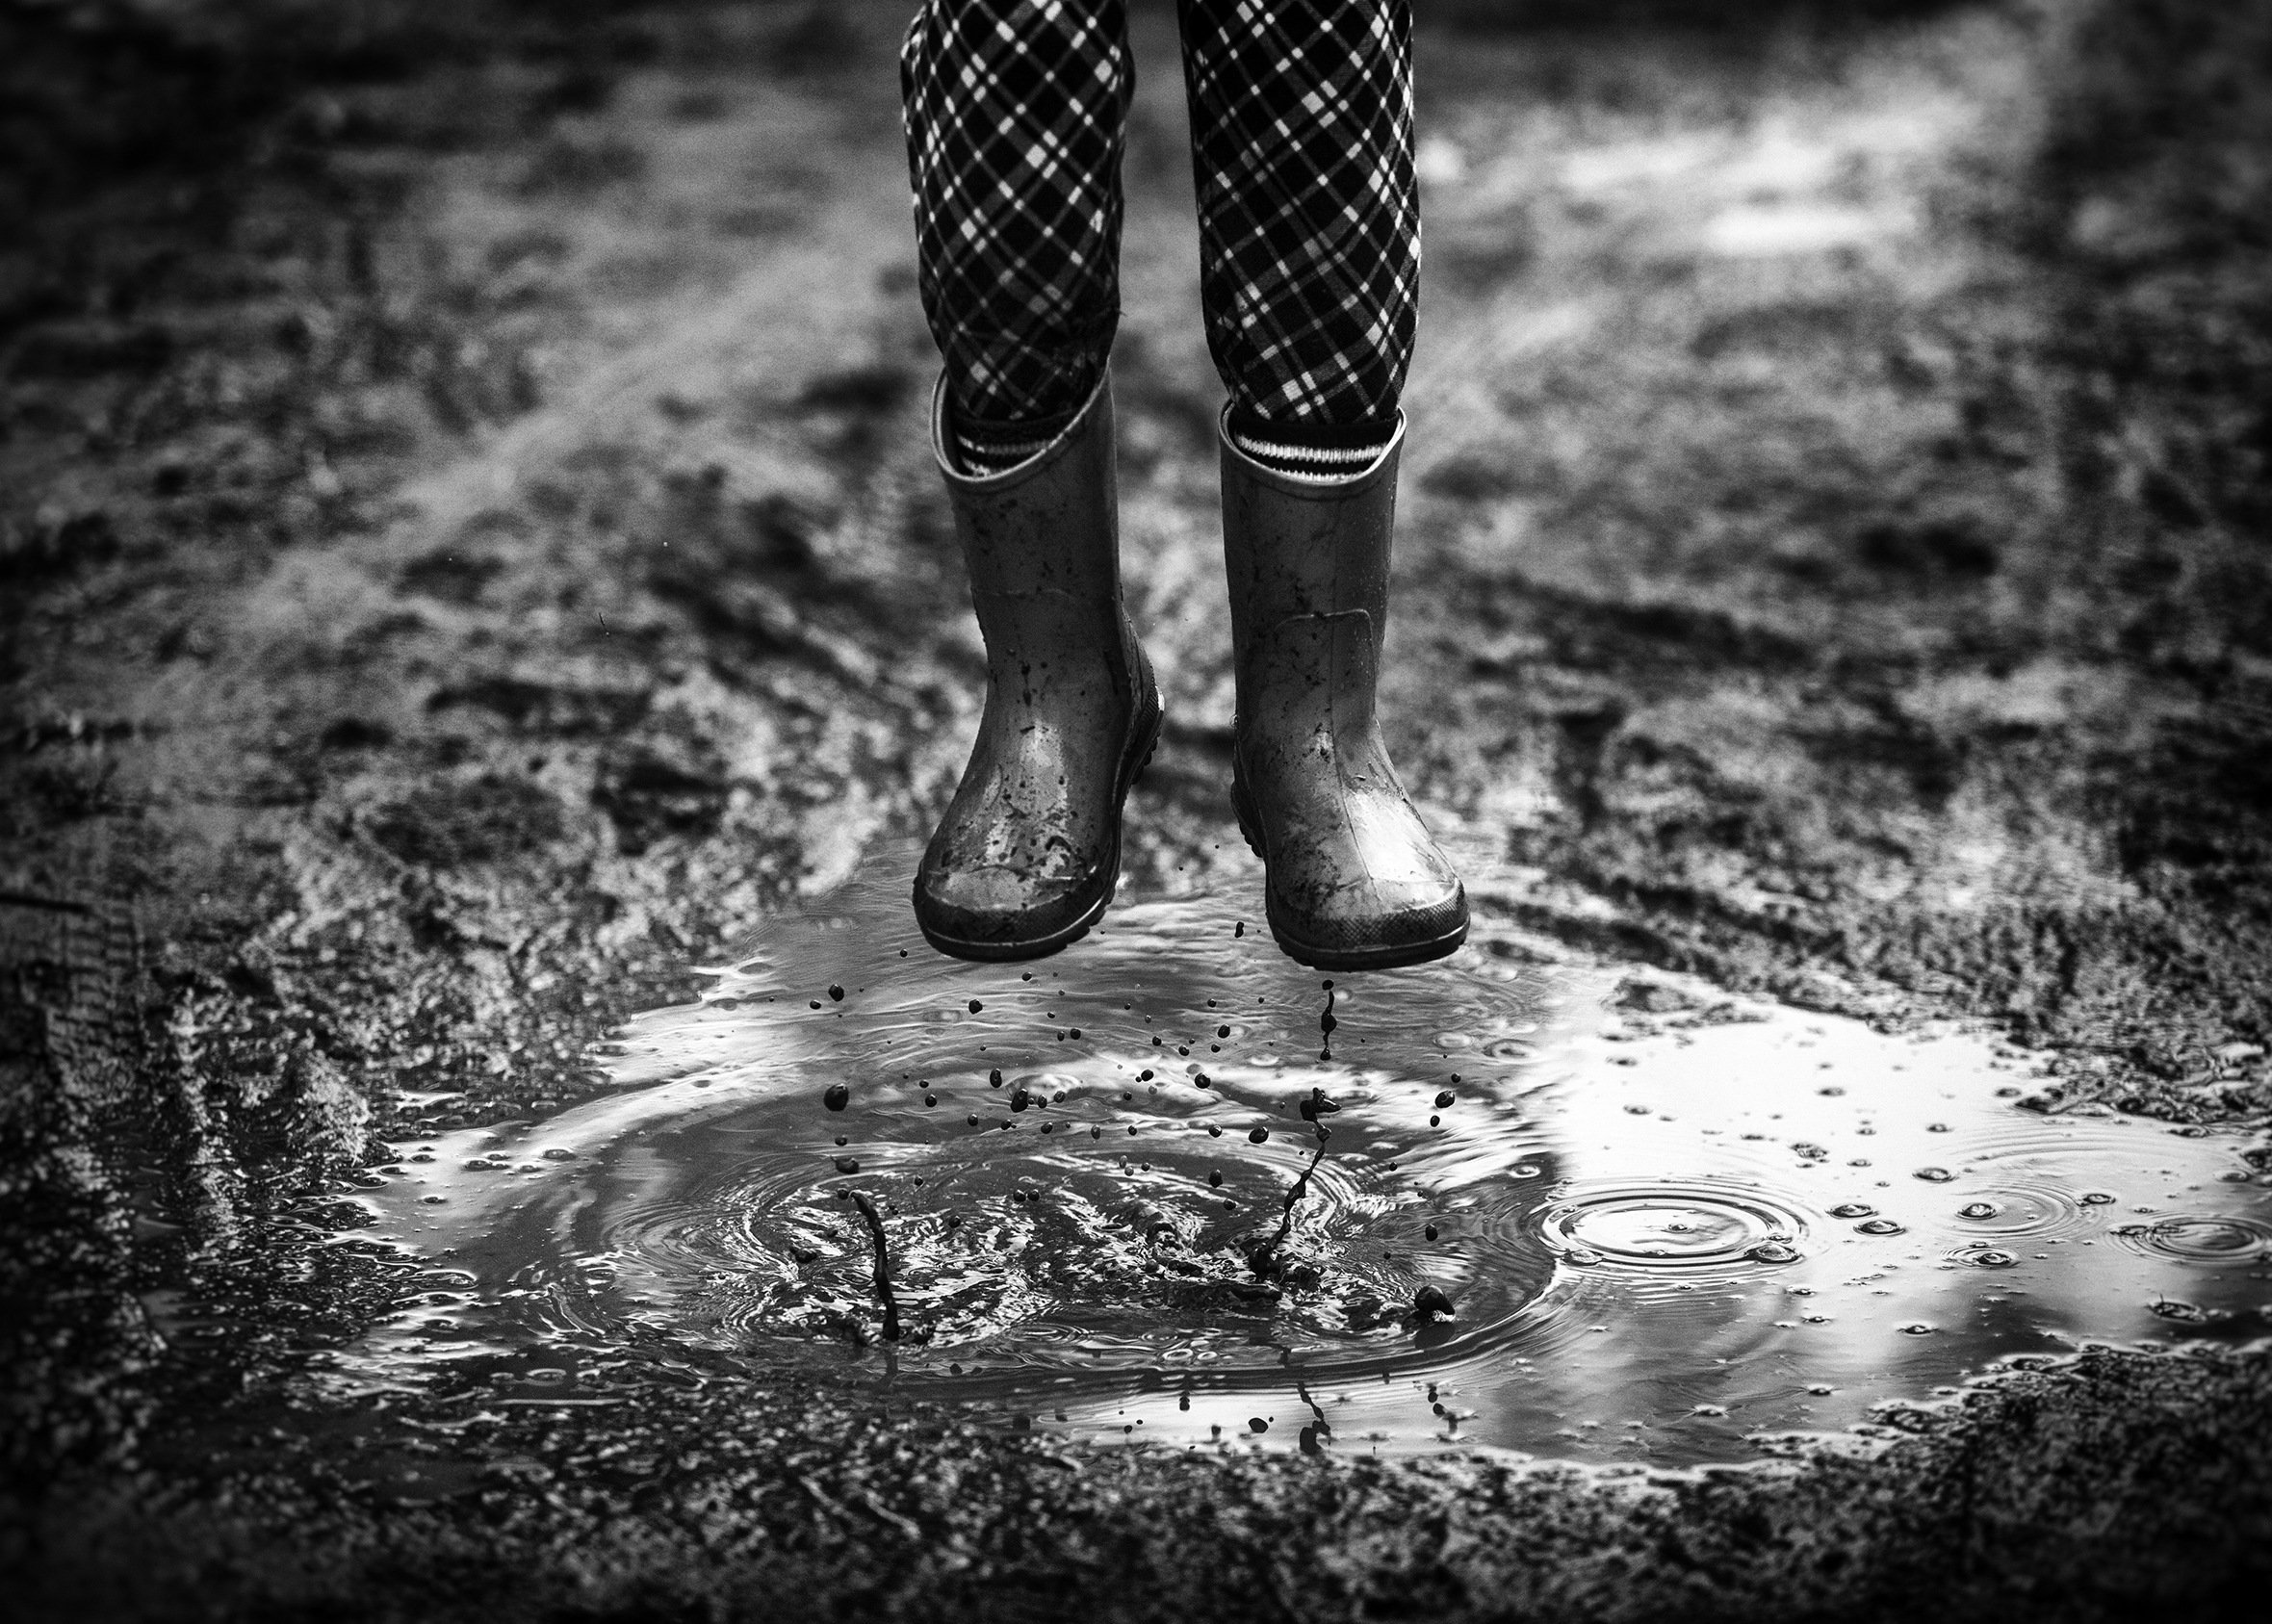 A close-up of a child's legs with the pants tucked into rain boots taken mid-jump over a mud puddle.